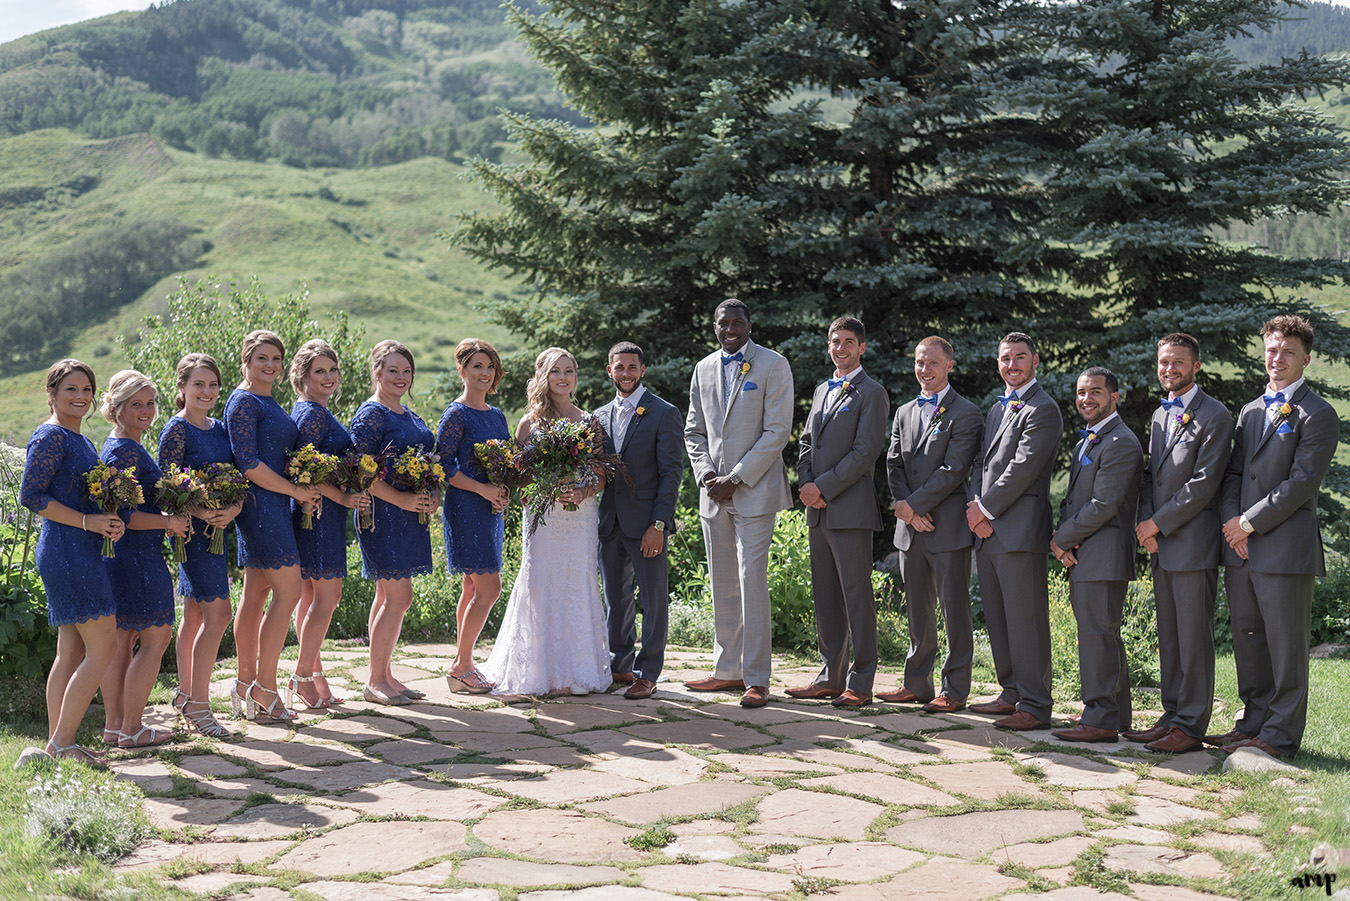 Full bridal party at the Crested Butte Mountain Wedding Garden